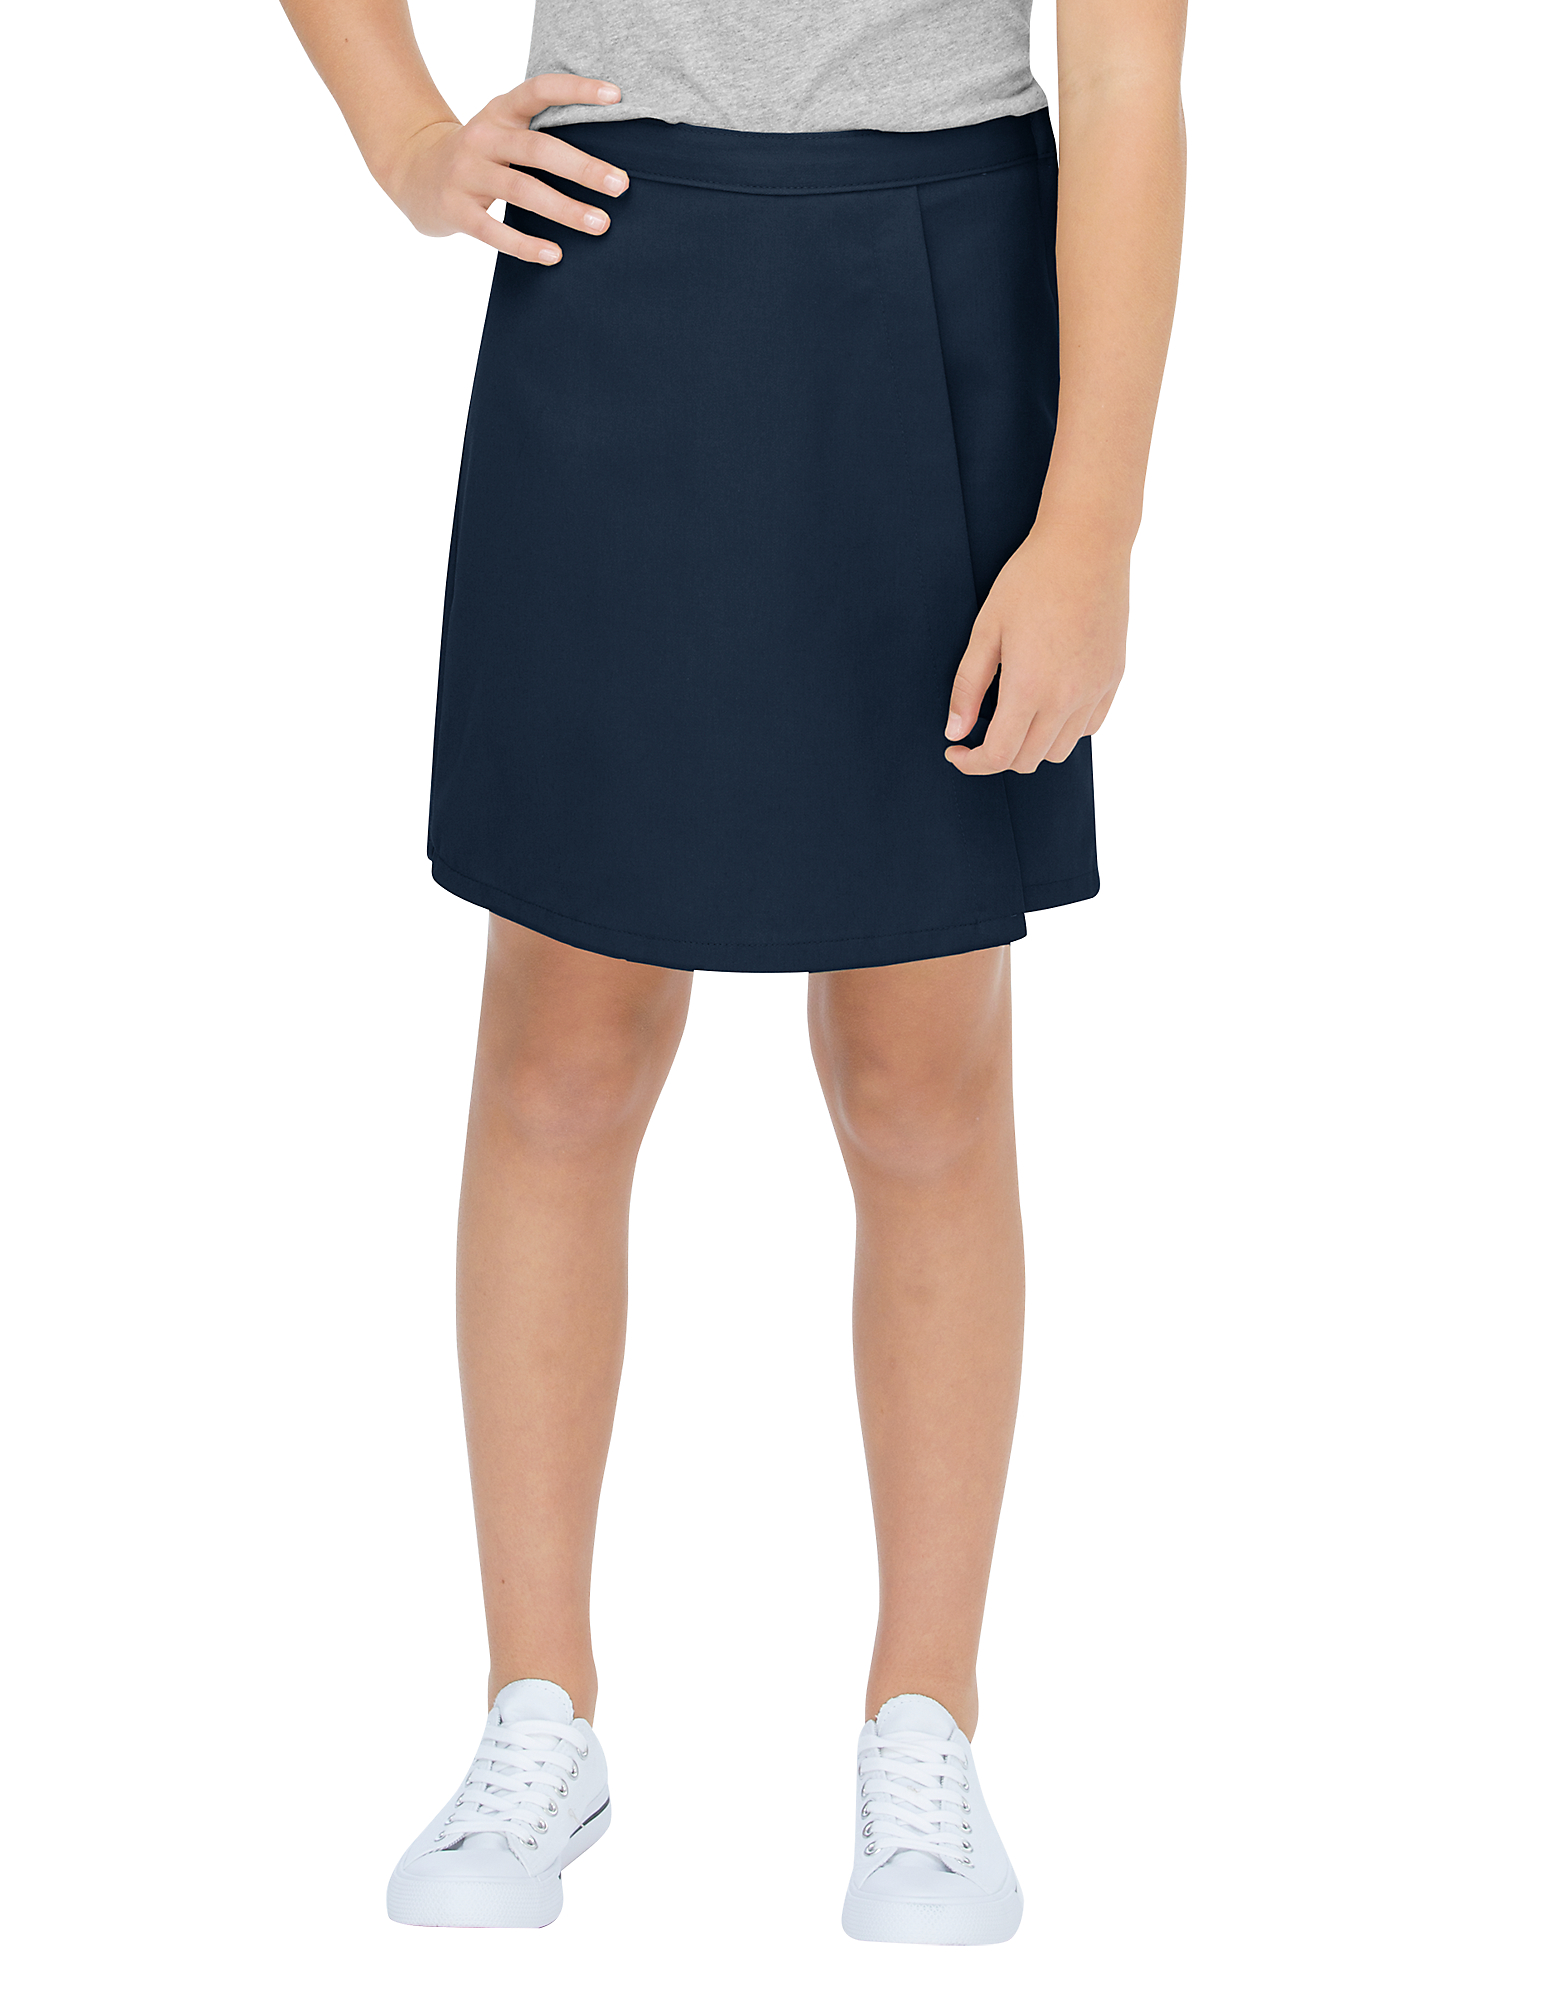 Girls' Faux Wrap Skort, 4-16 - Dark Navy (DN)